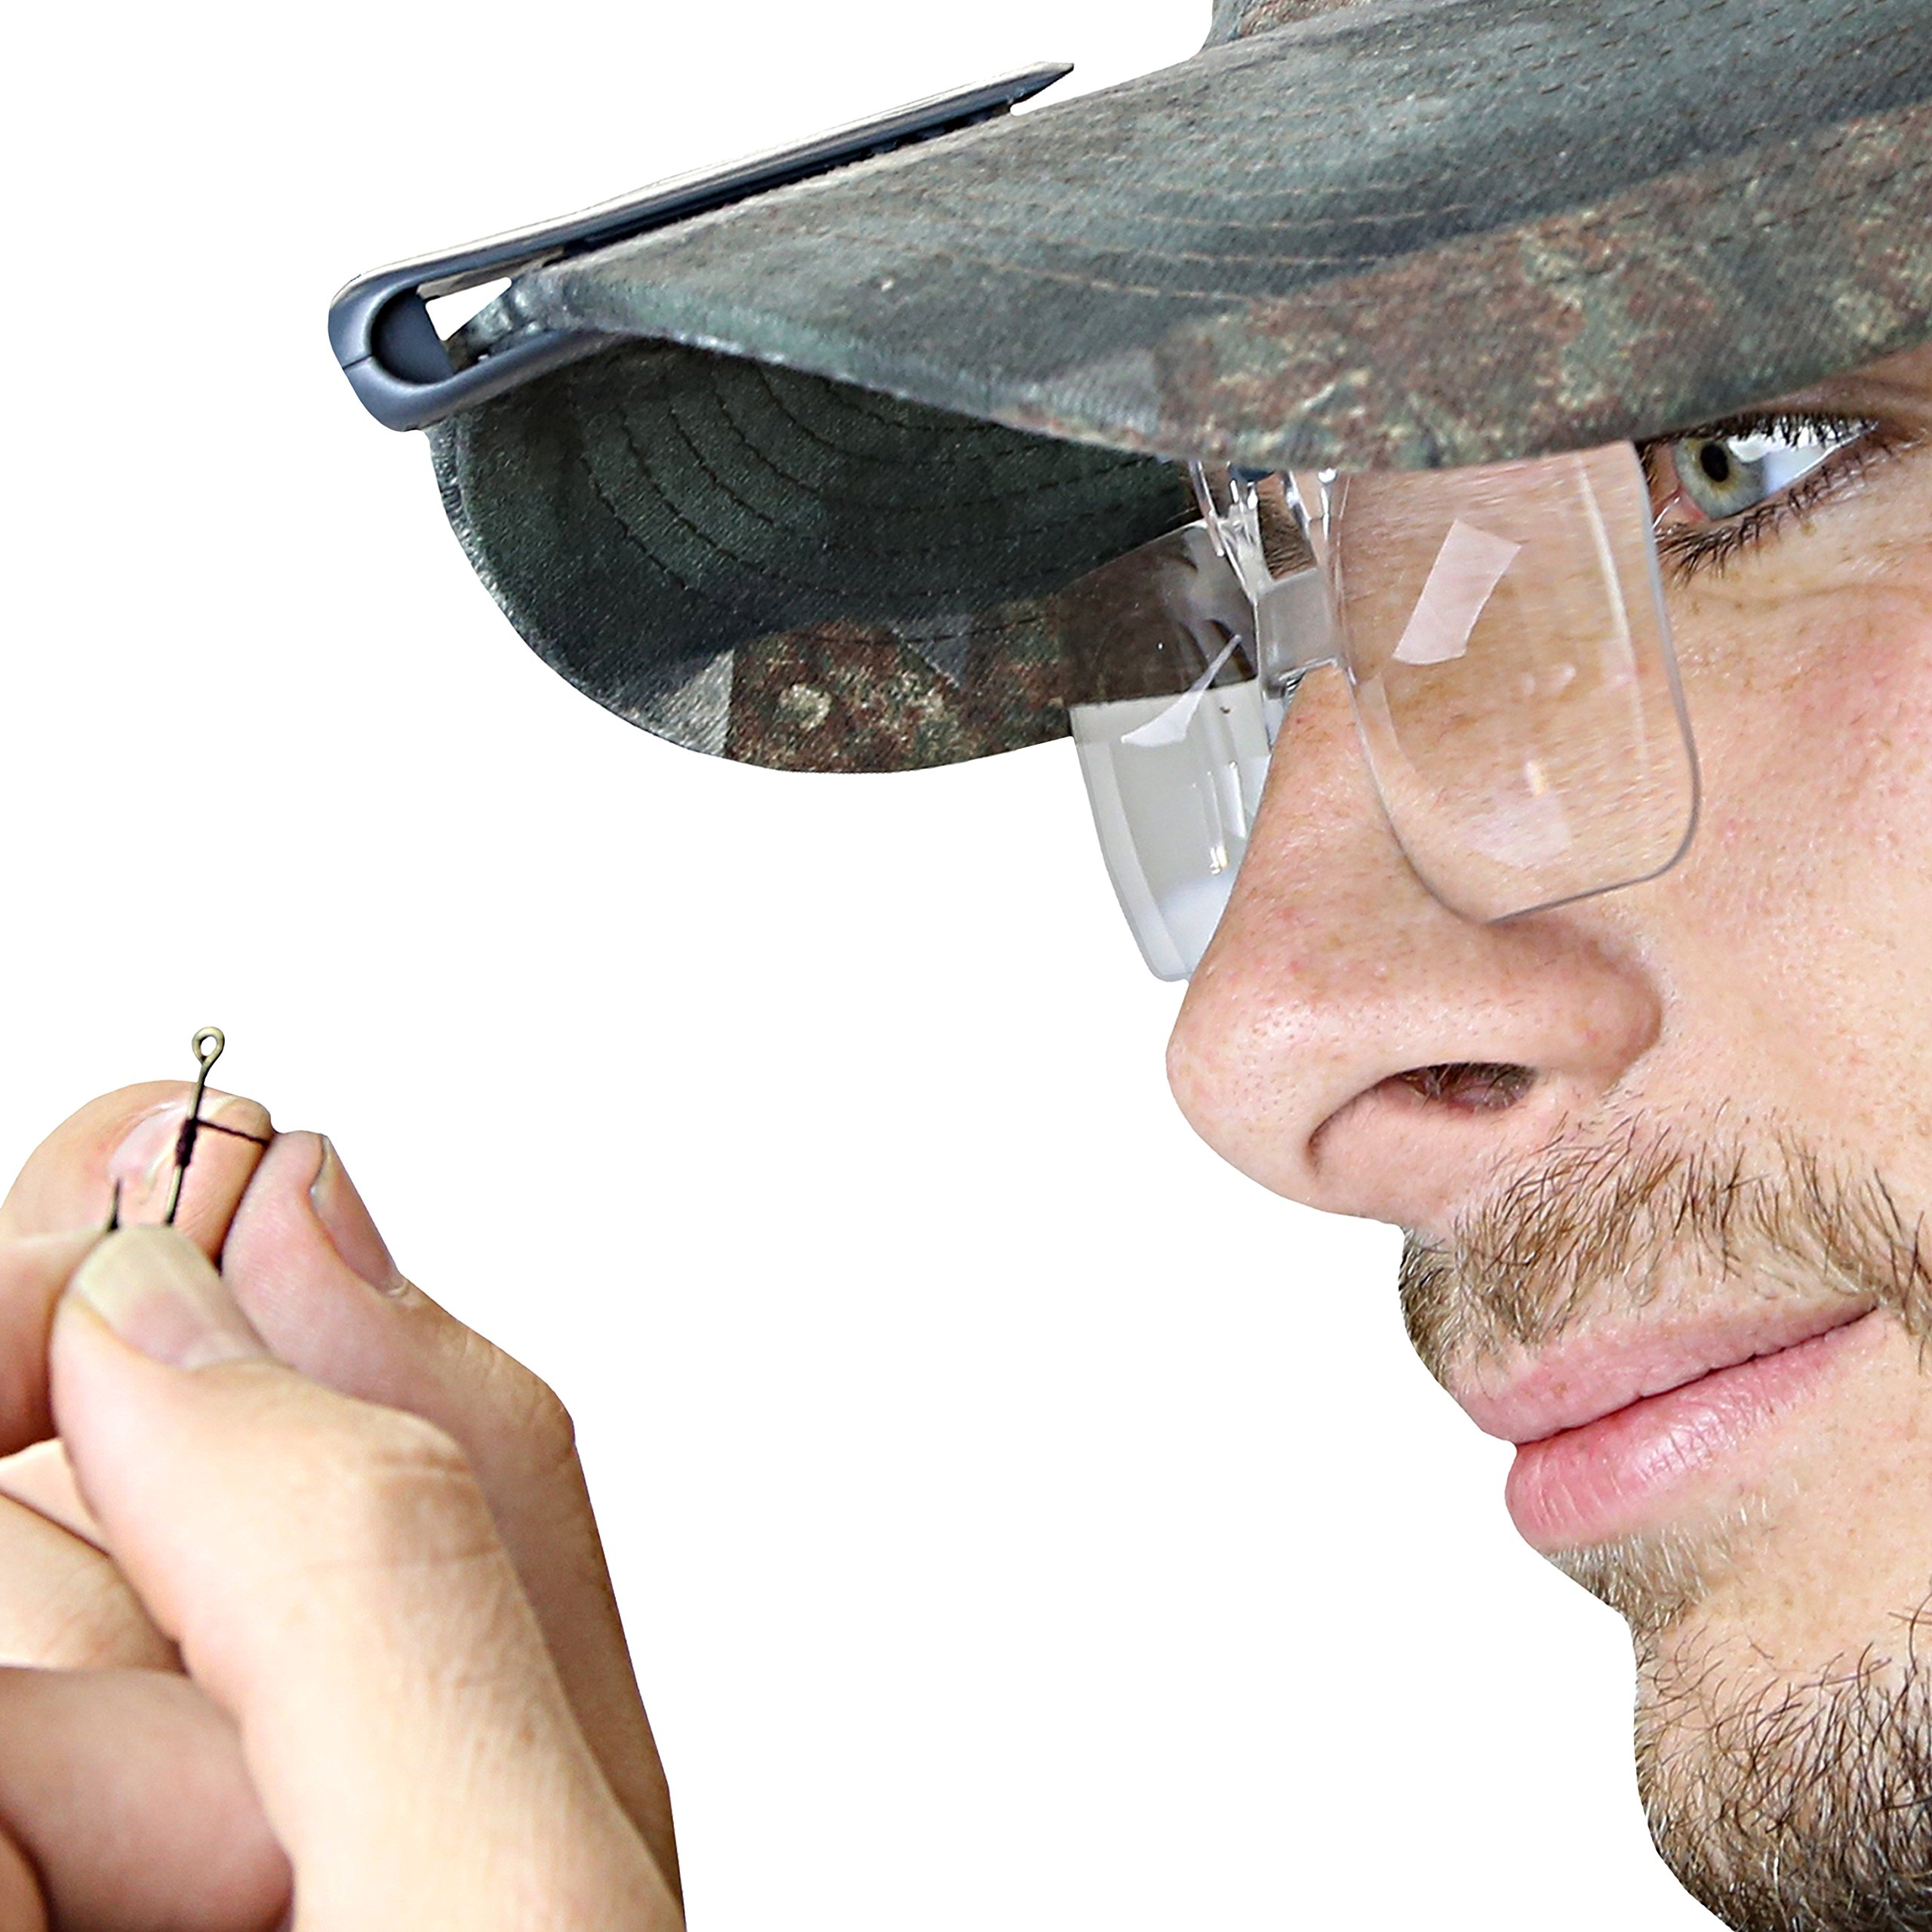 Carson Optical VisorMag 1.75x Power (+3.00 Diopters) Clip-On Magnifying Lens for Hats VM-10 by Carson (Image #6)